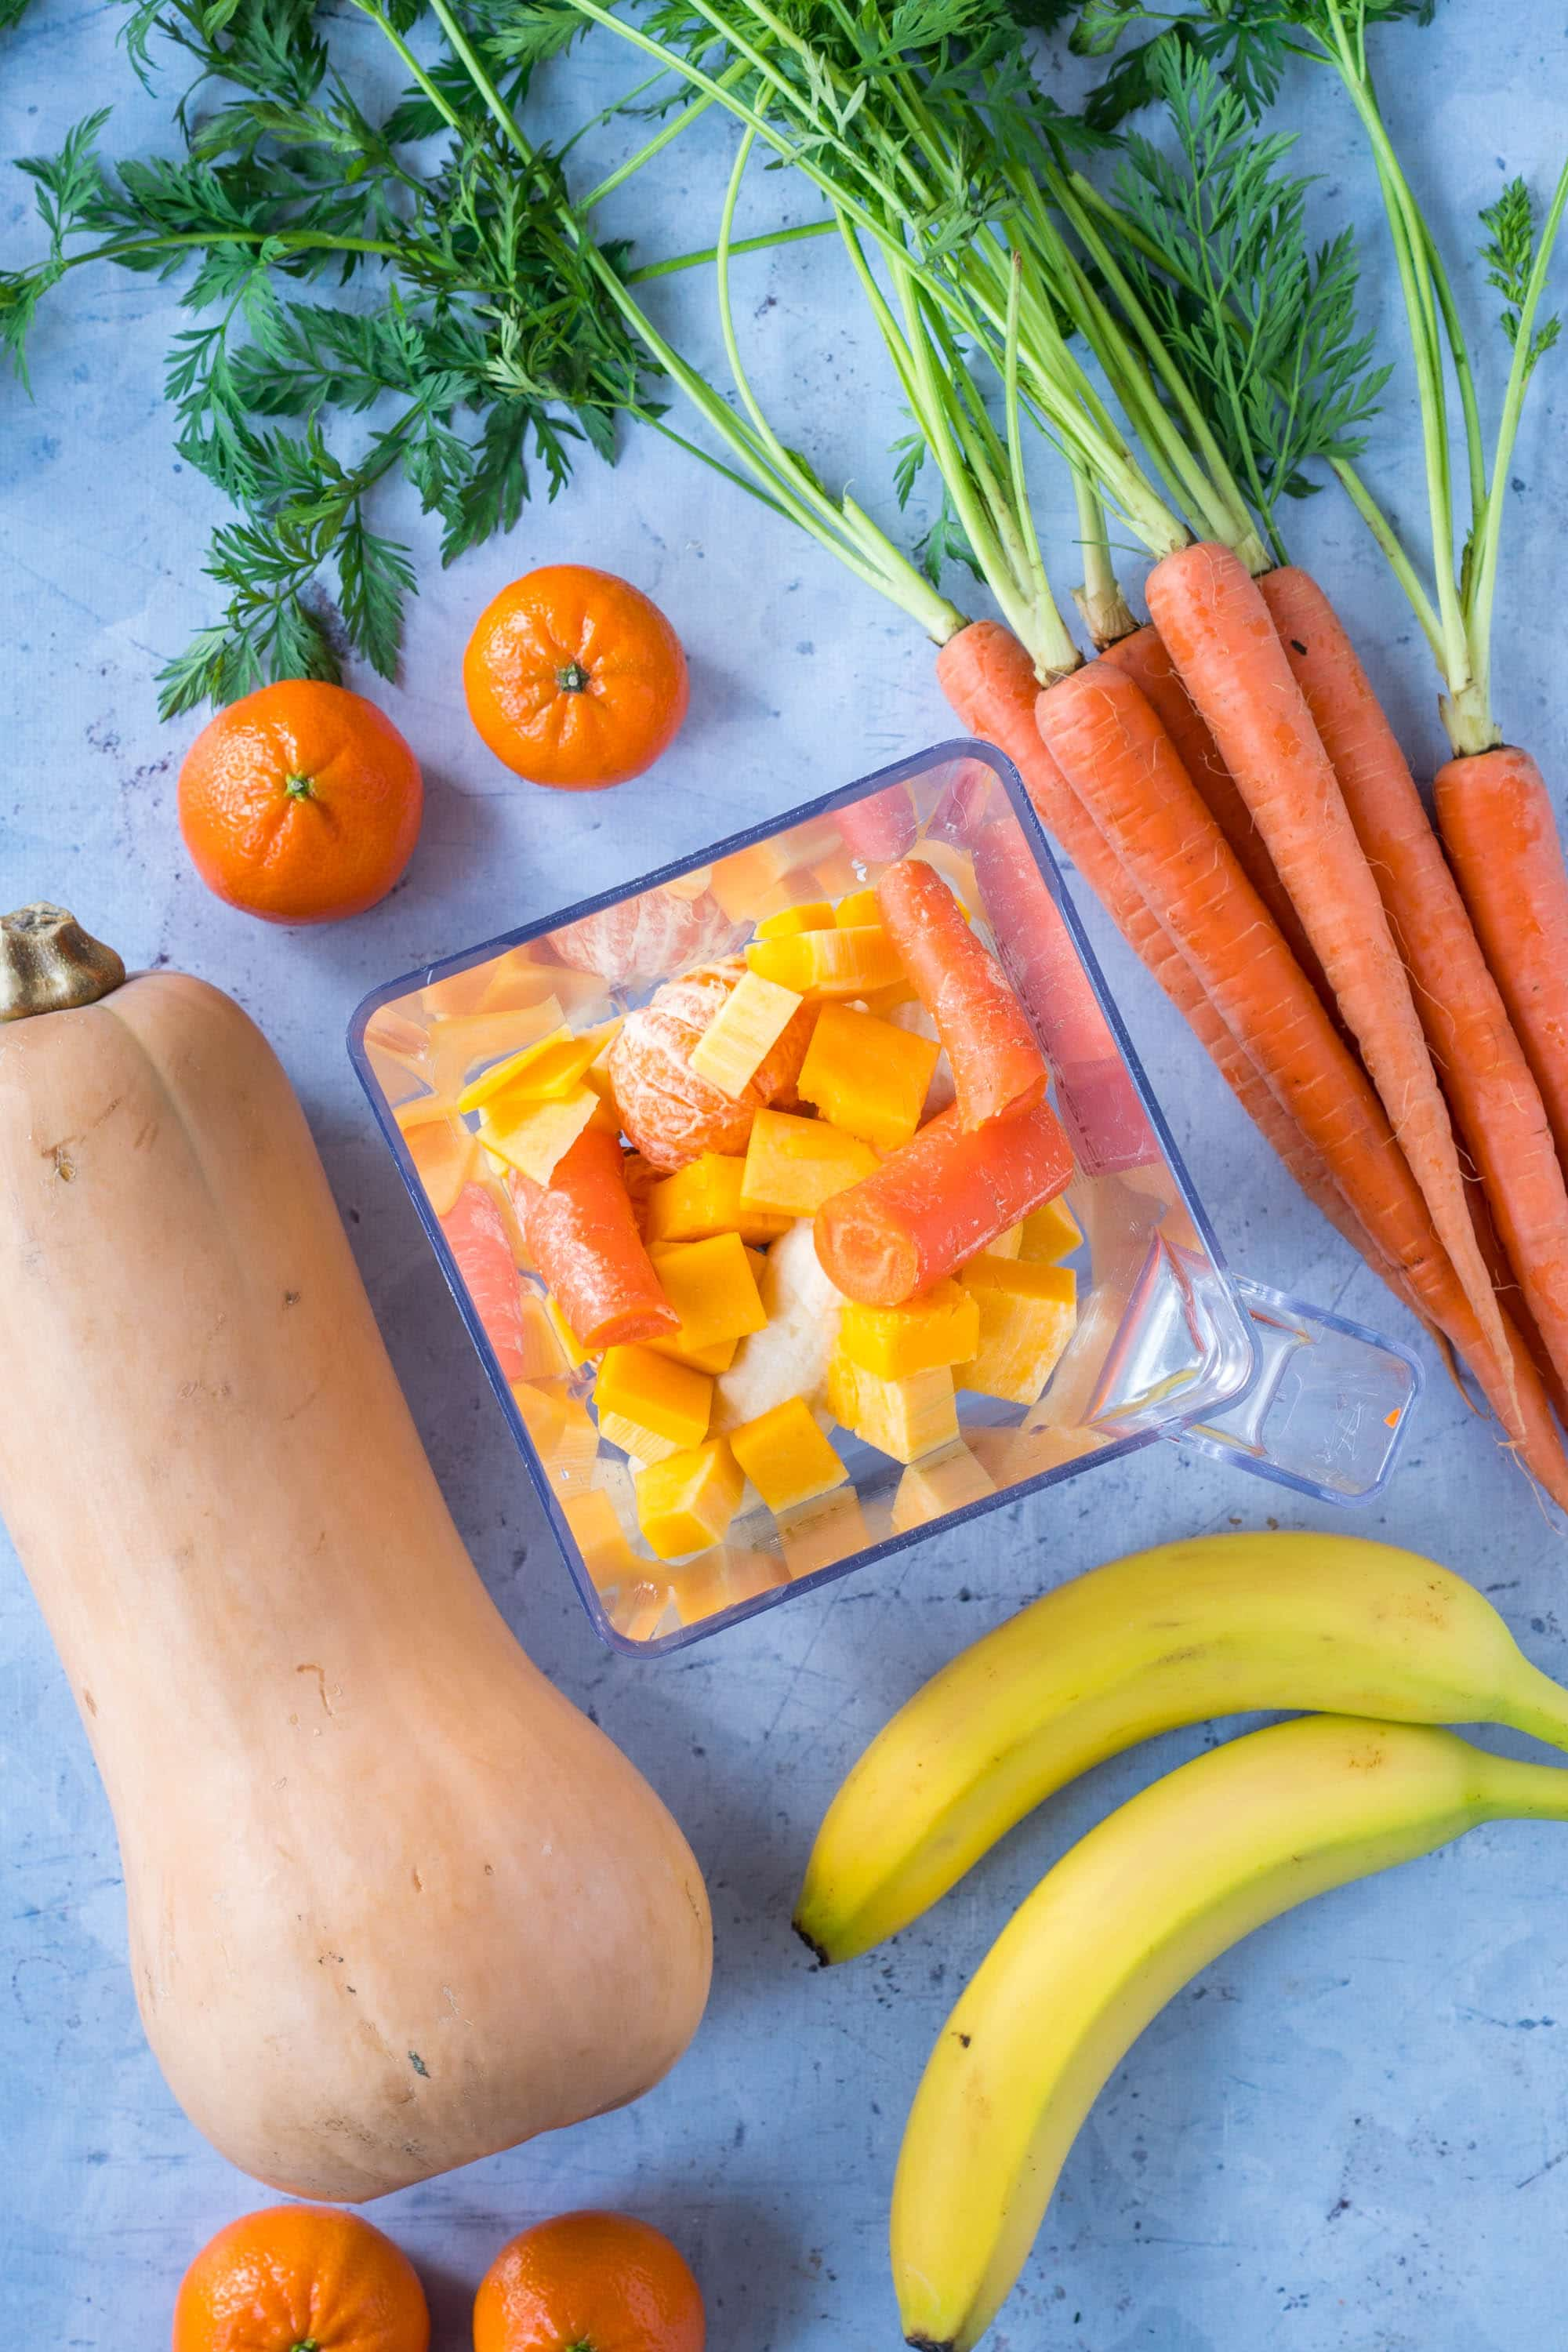 Tangerines, carrots, butternut squash, bananas in a blender